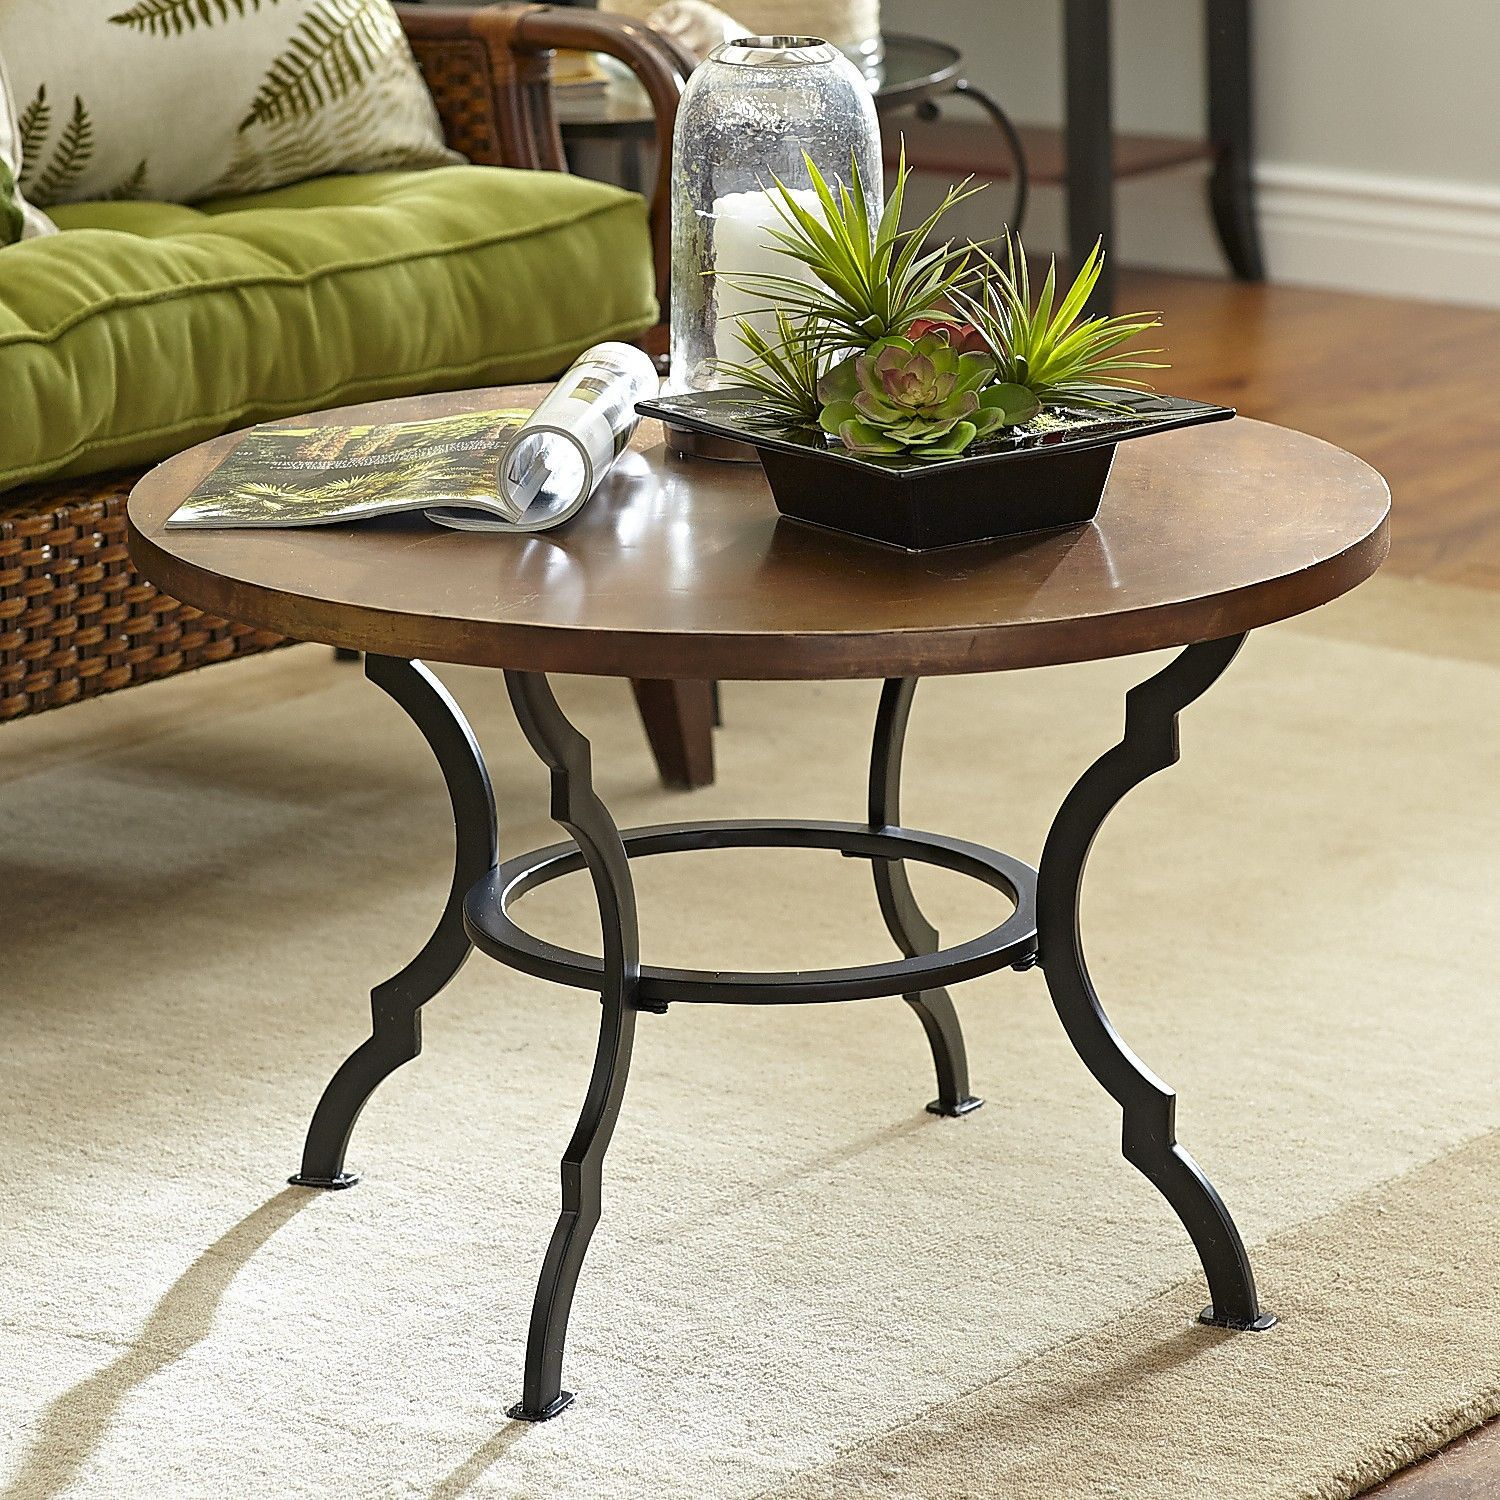 Colton Coffee Table Pier Imports Home Style Pinterest - Colton coffee table